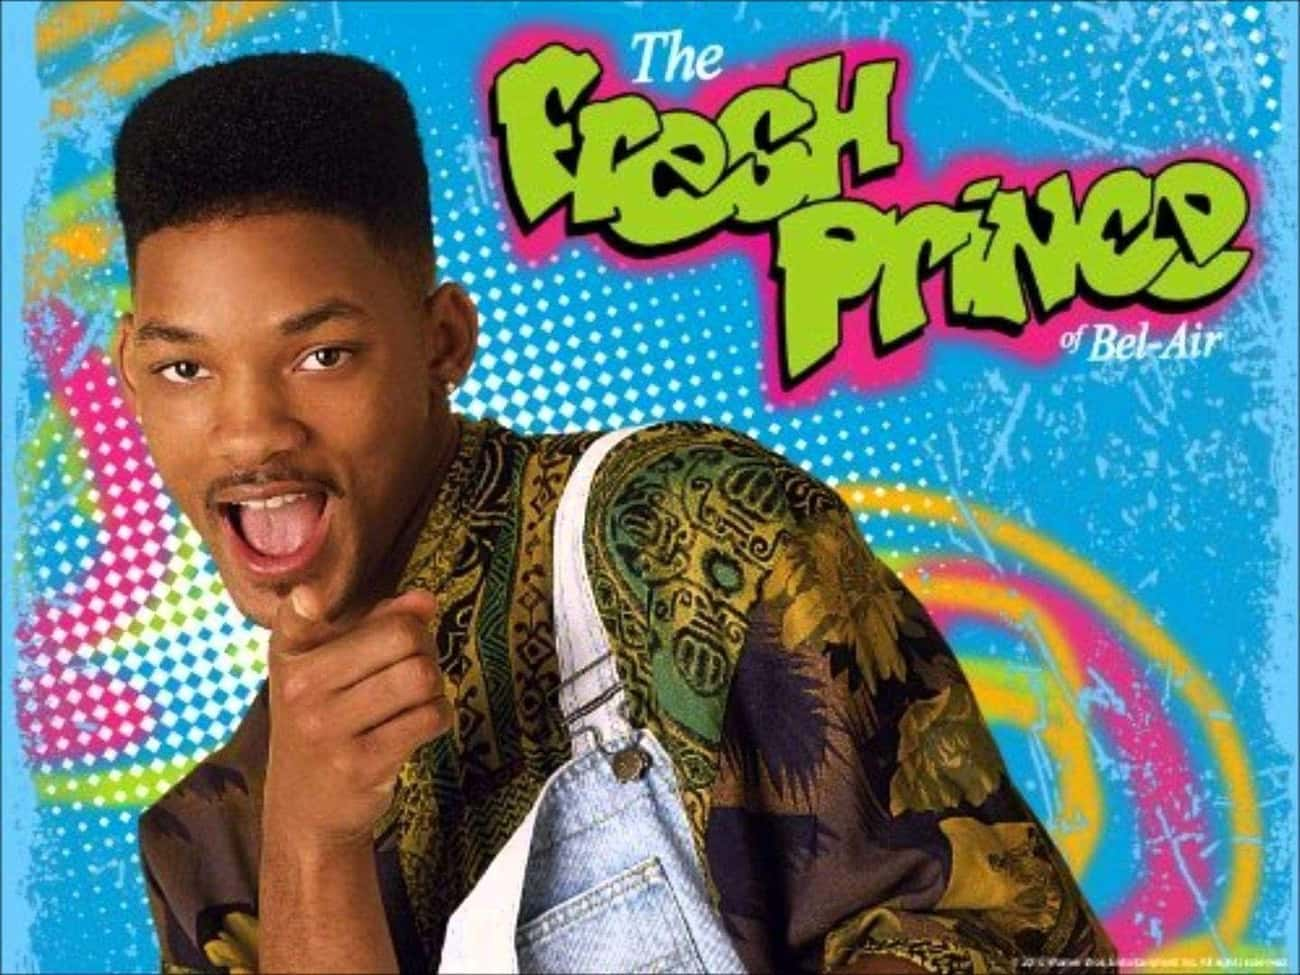 1994: The Two Meet When Pinkett Smith Auditions For 'The Fresh Prince Of Bel-Air'